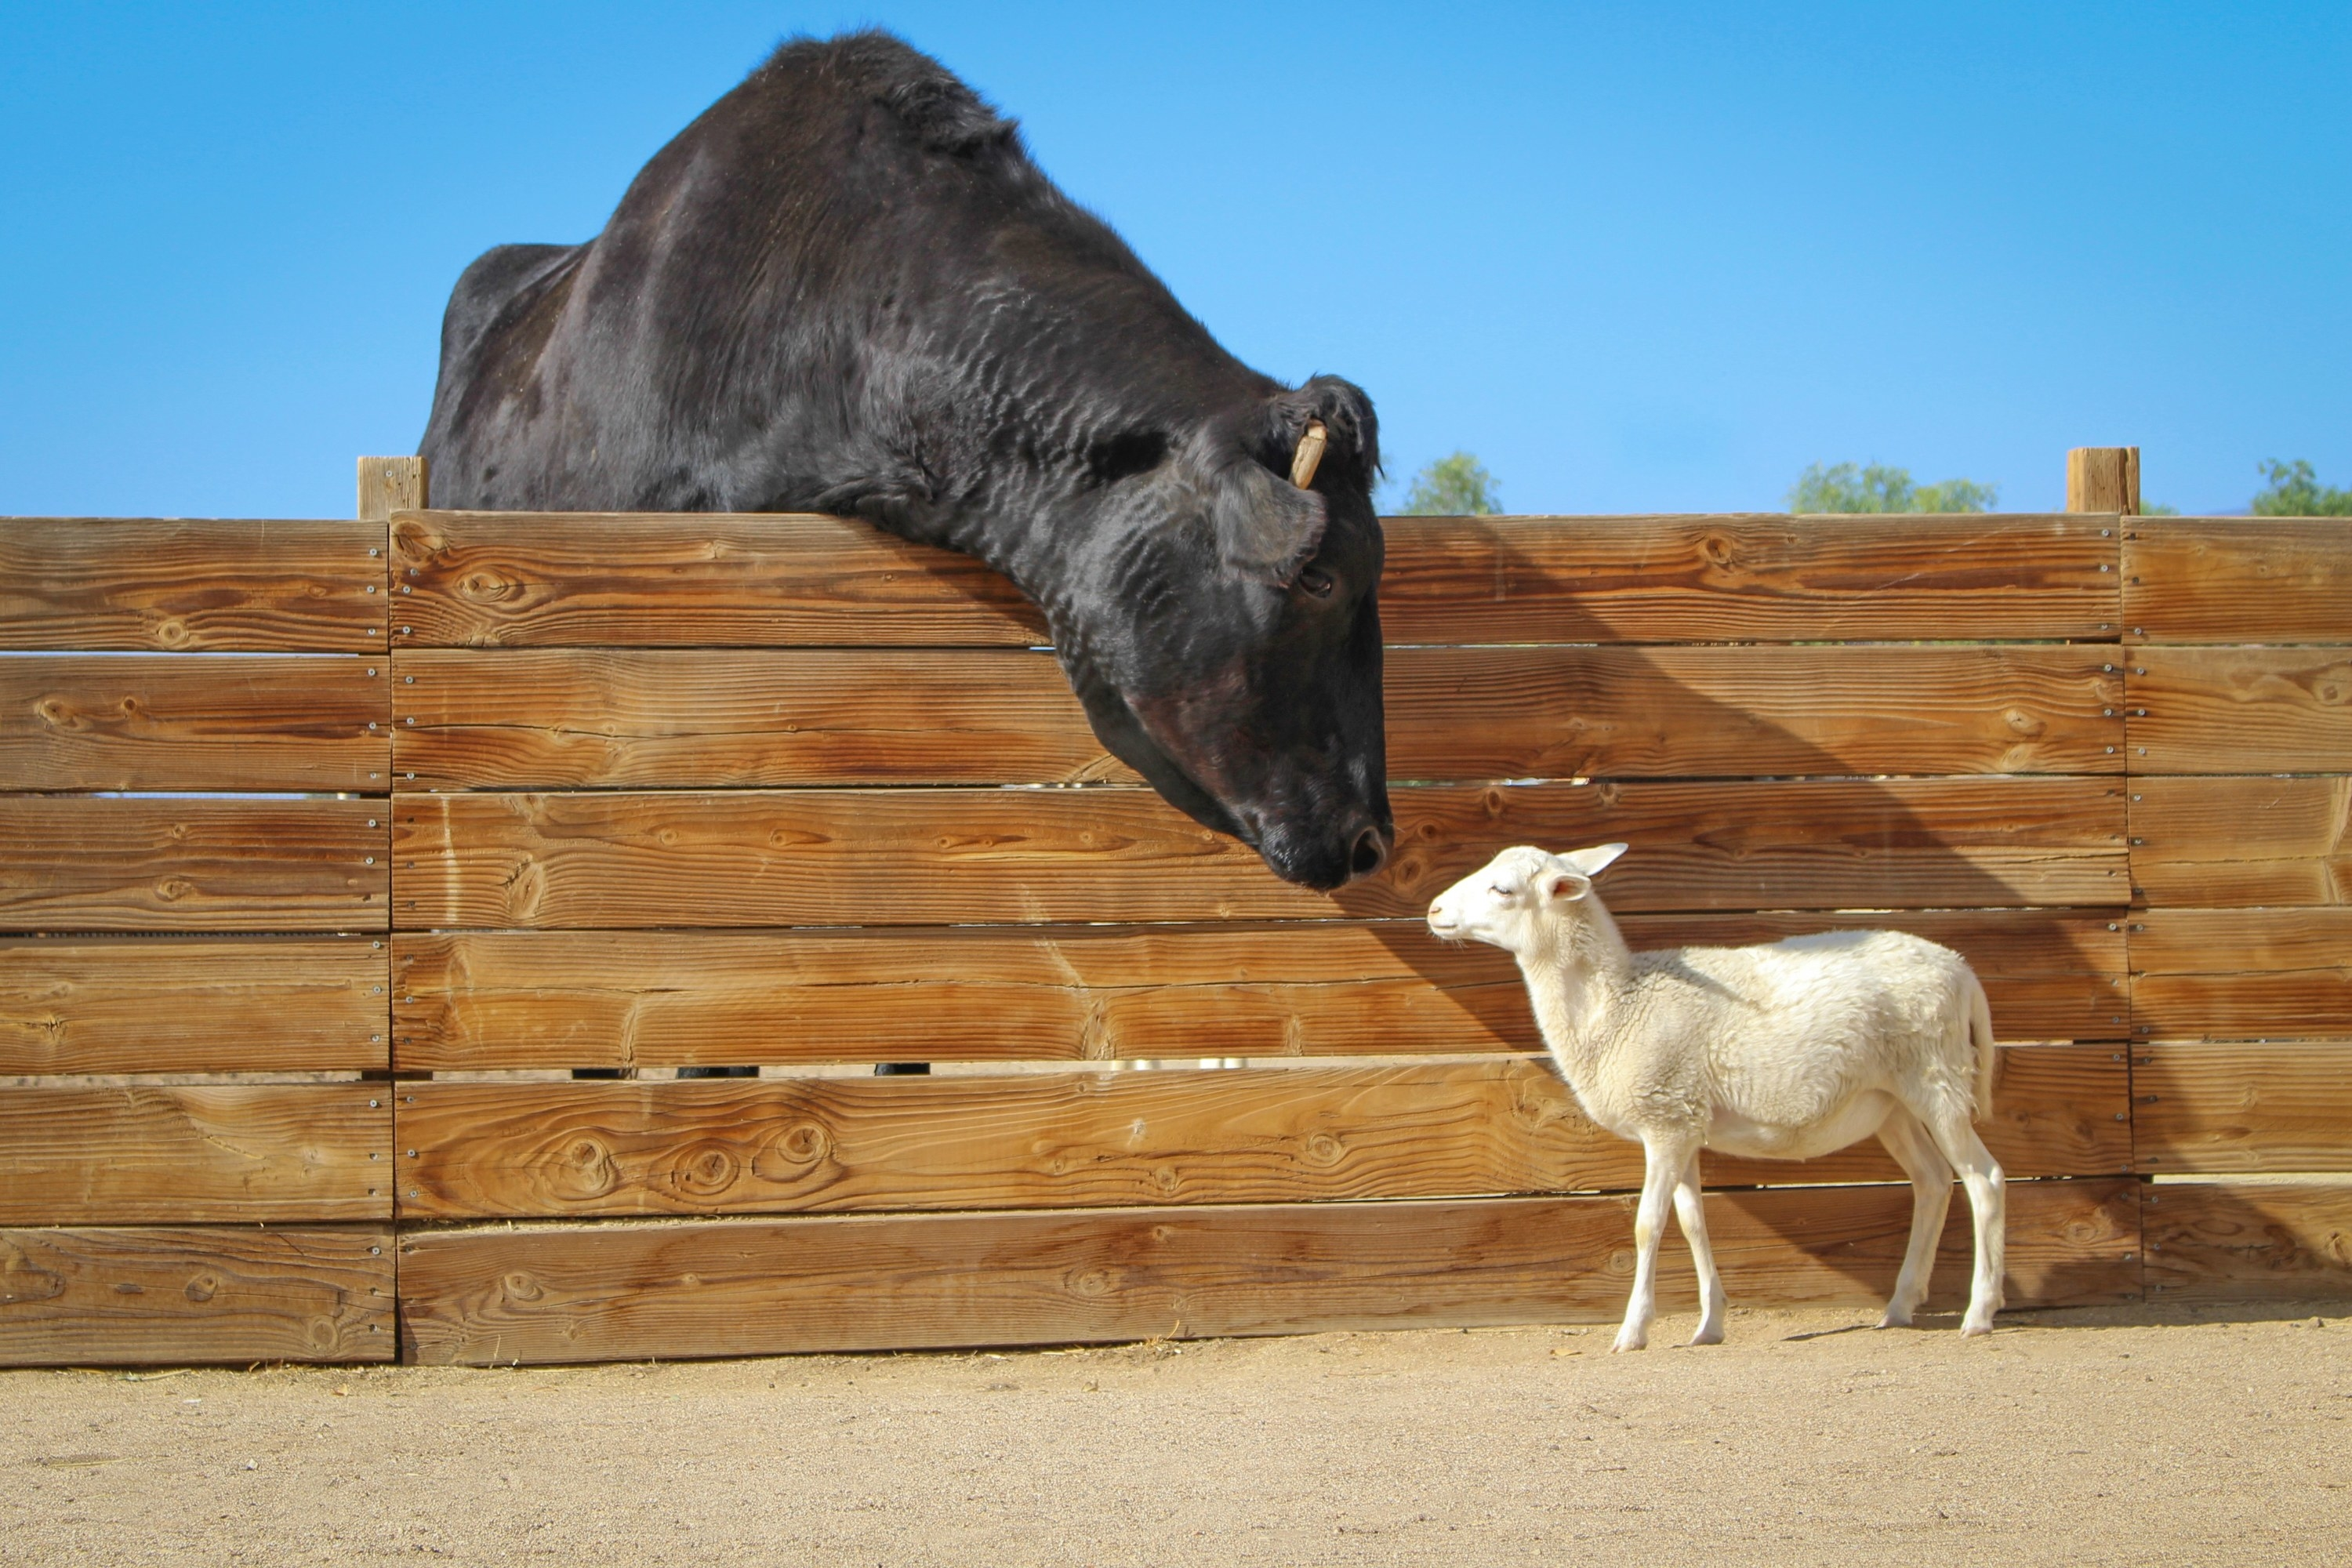 a large steer kissing a sheep